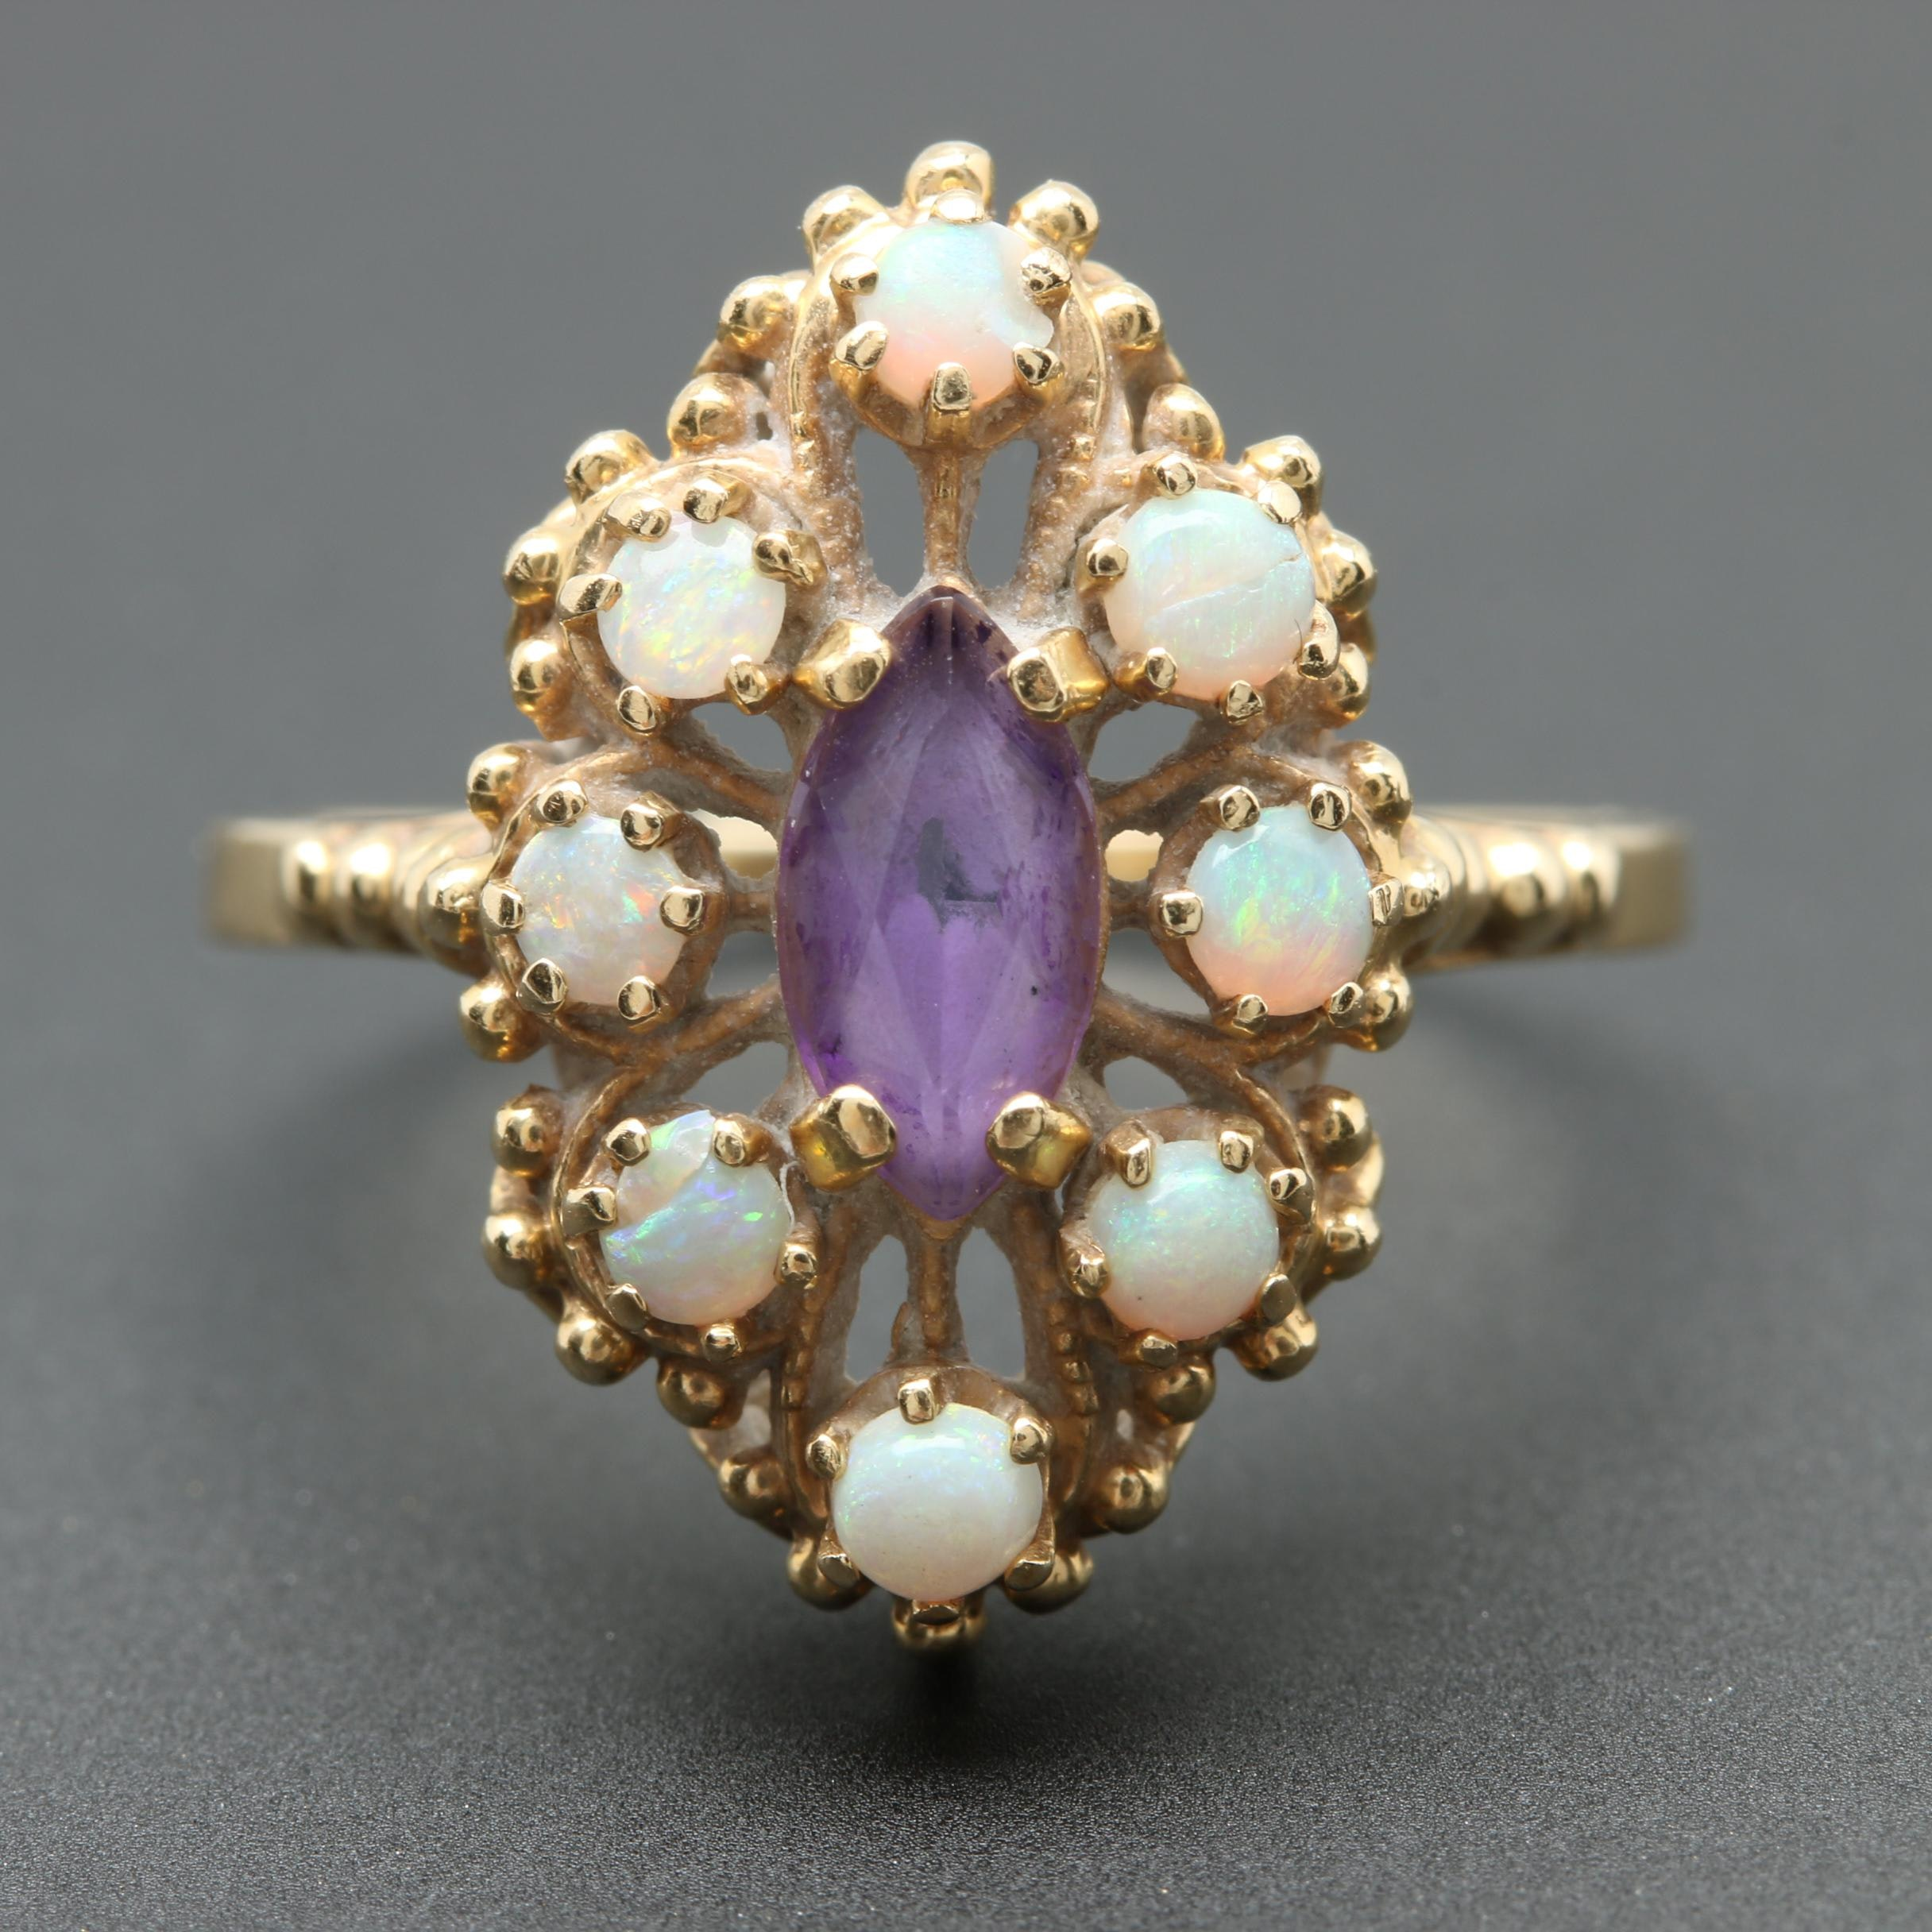 Vintage 14K Yellow Gold Amethyst and Opal Ring